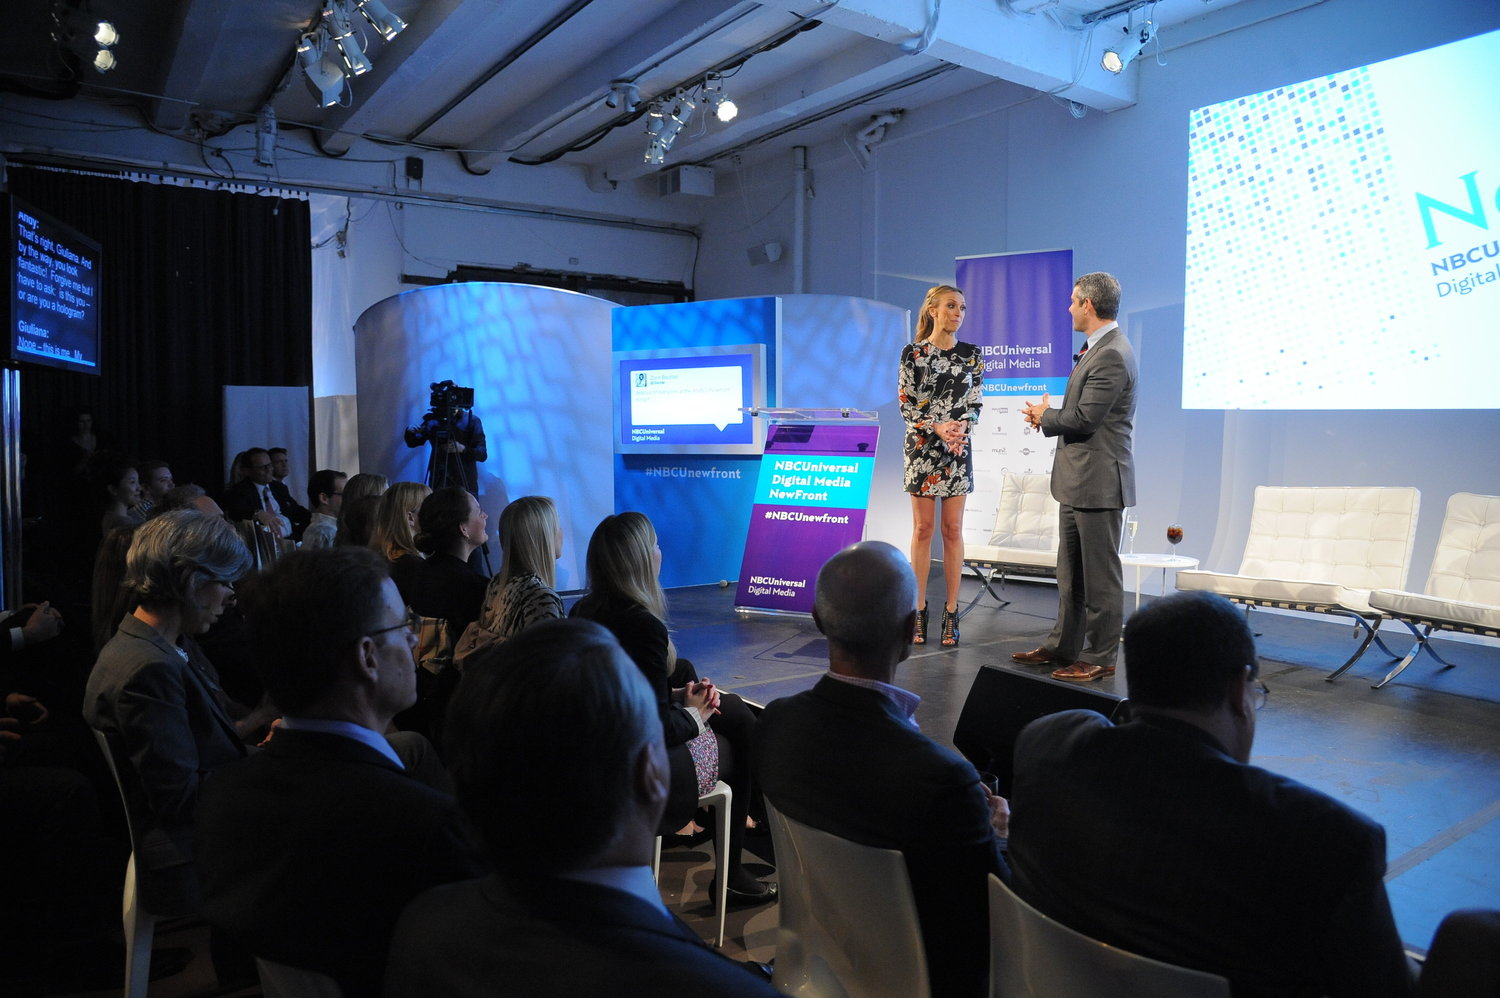 NBCUniversal First Annual Digital Newfront